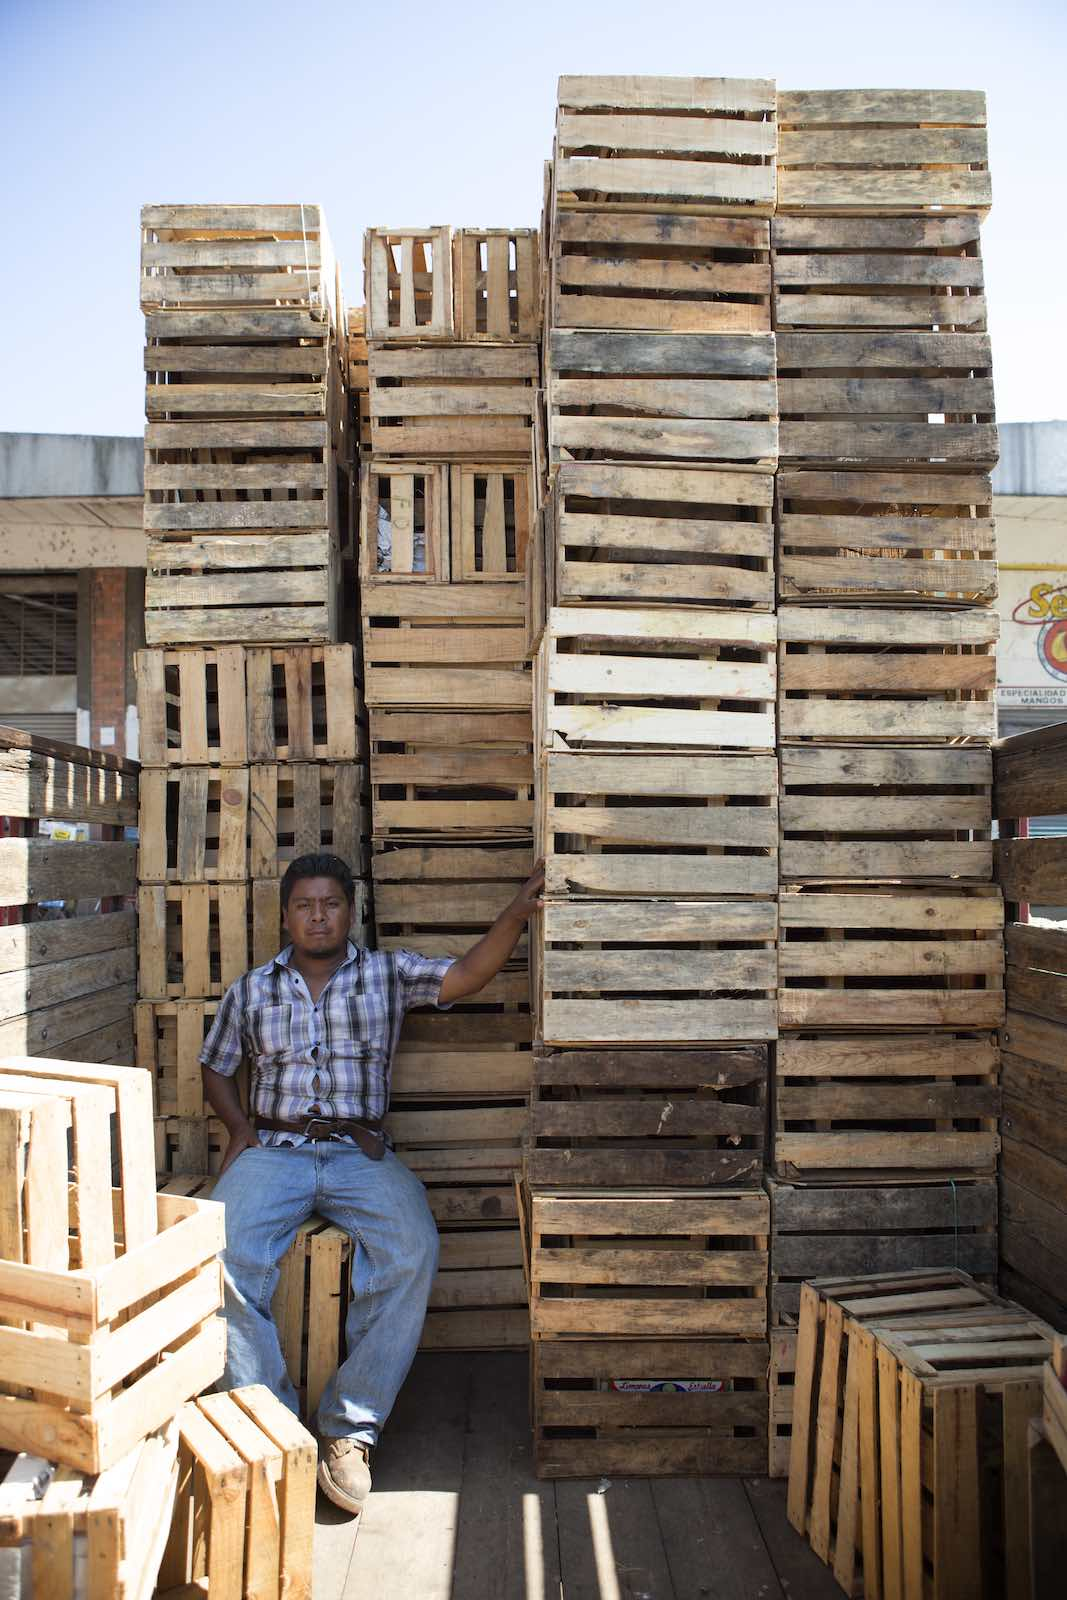 Jody Horton Photography - Man sitting in the shade of the stacks of empty crates.